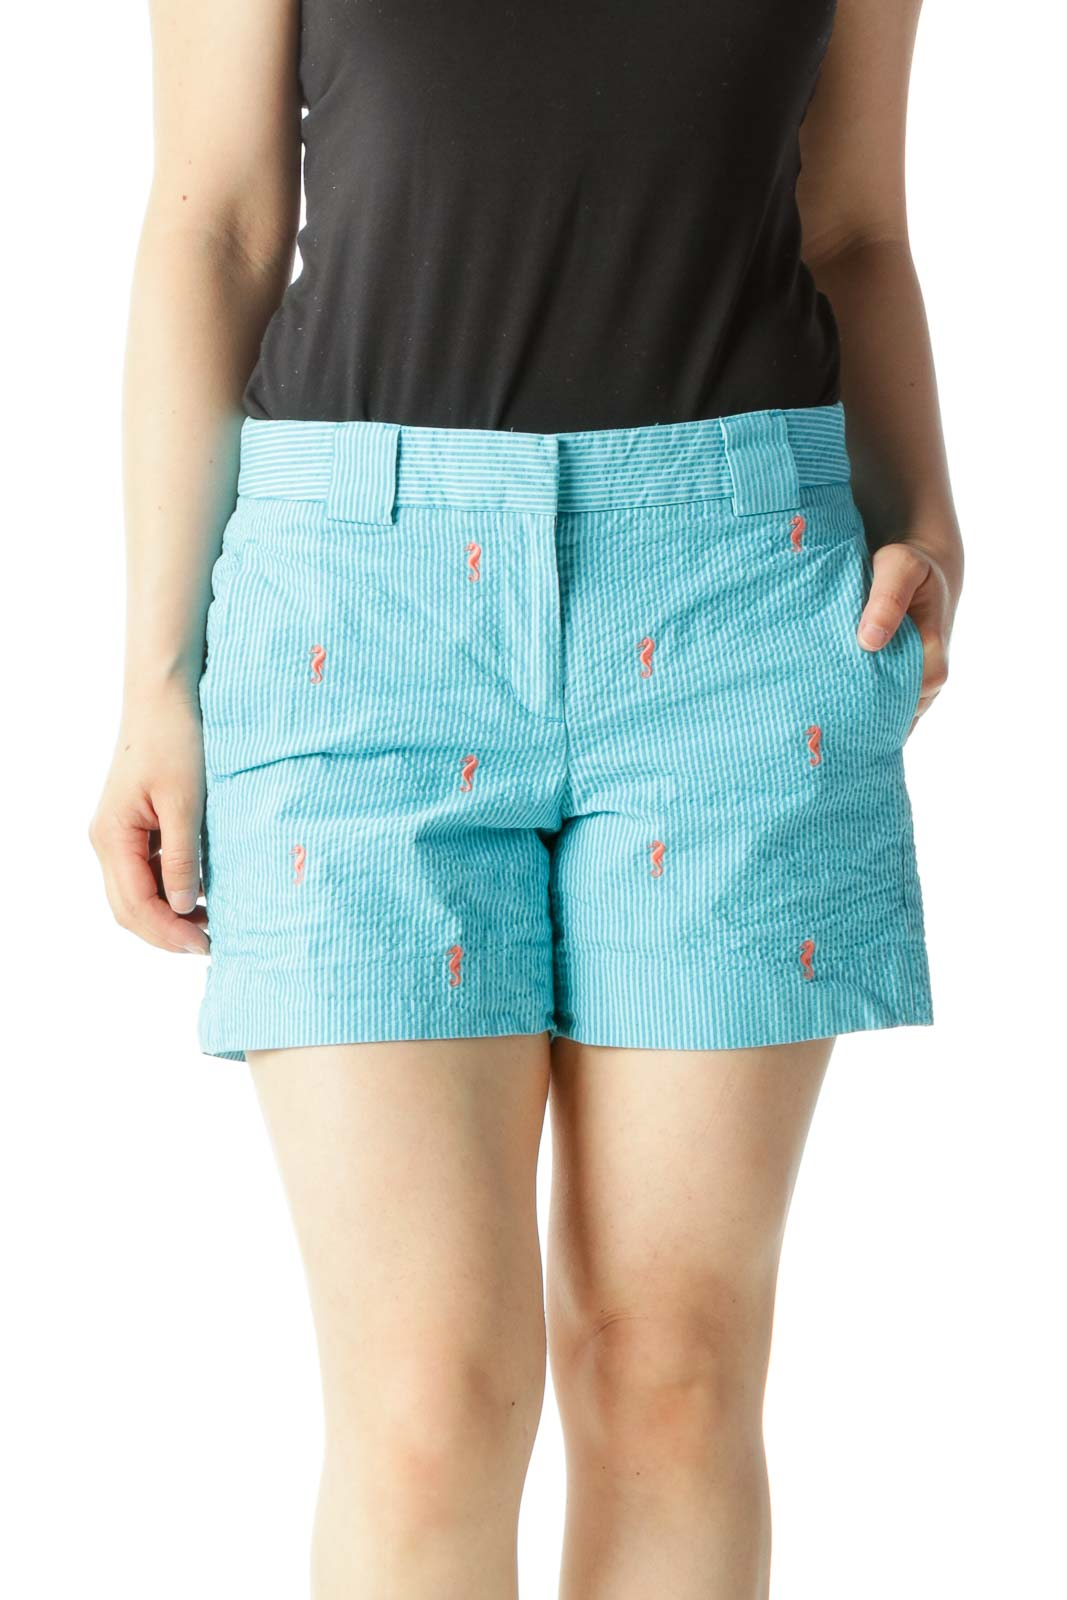 Blue Striped Shorts with Orange Seahorse Pattern Front